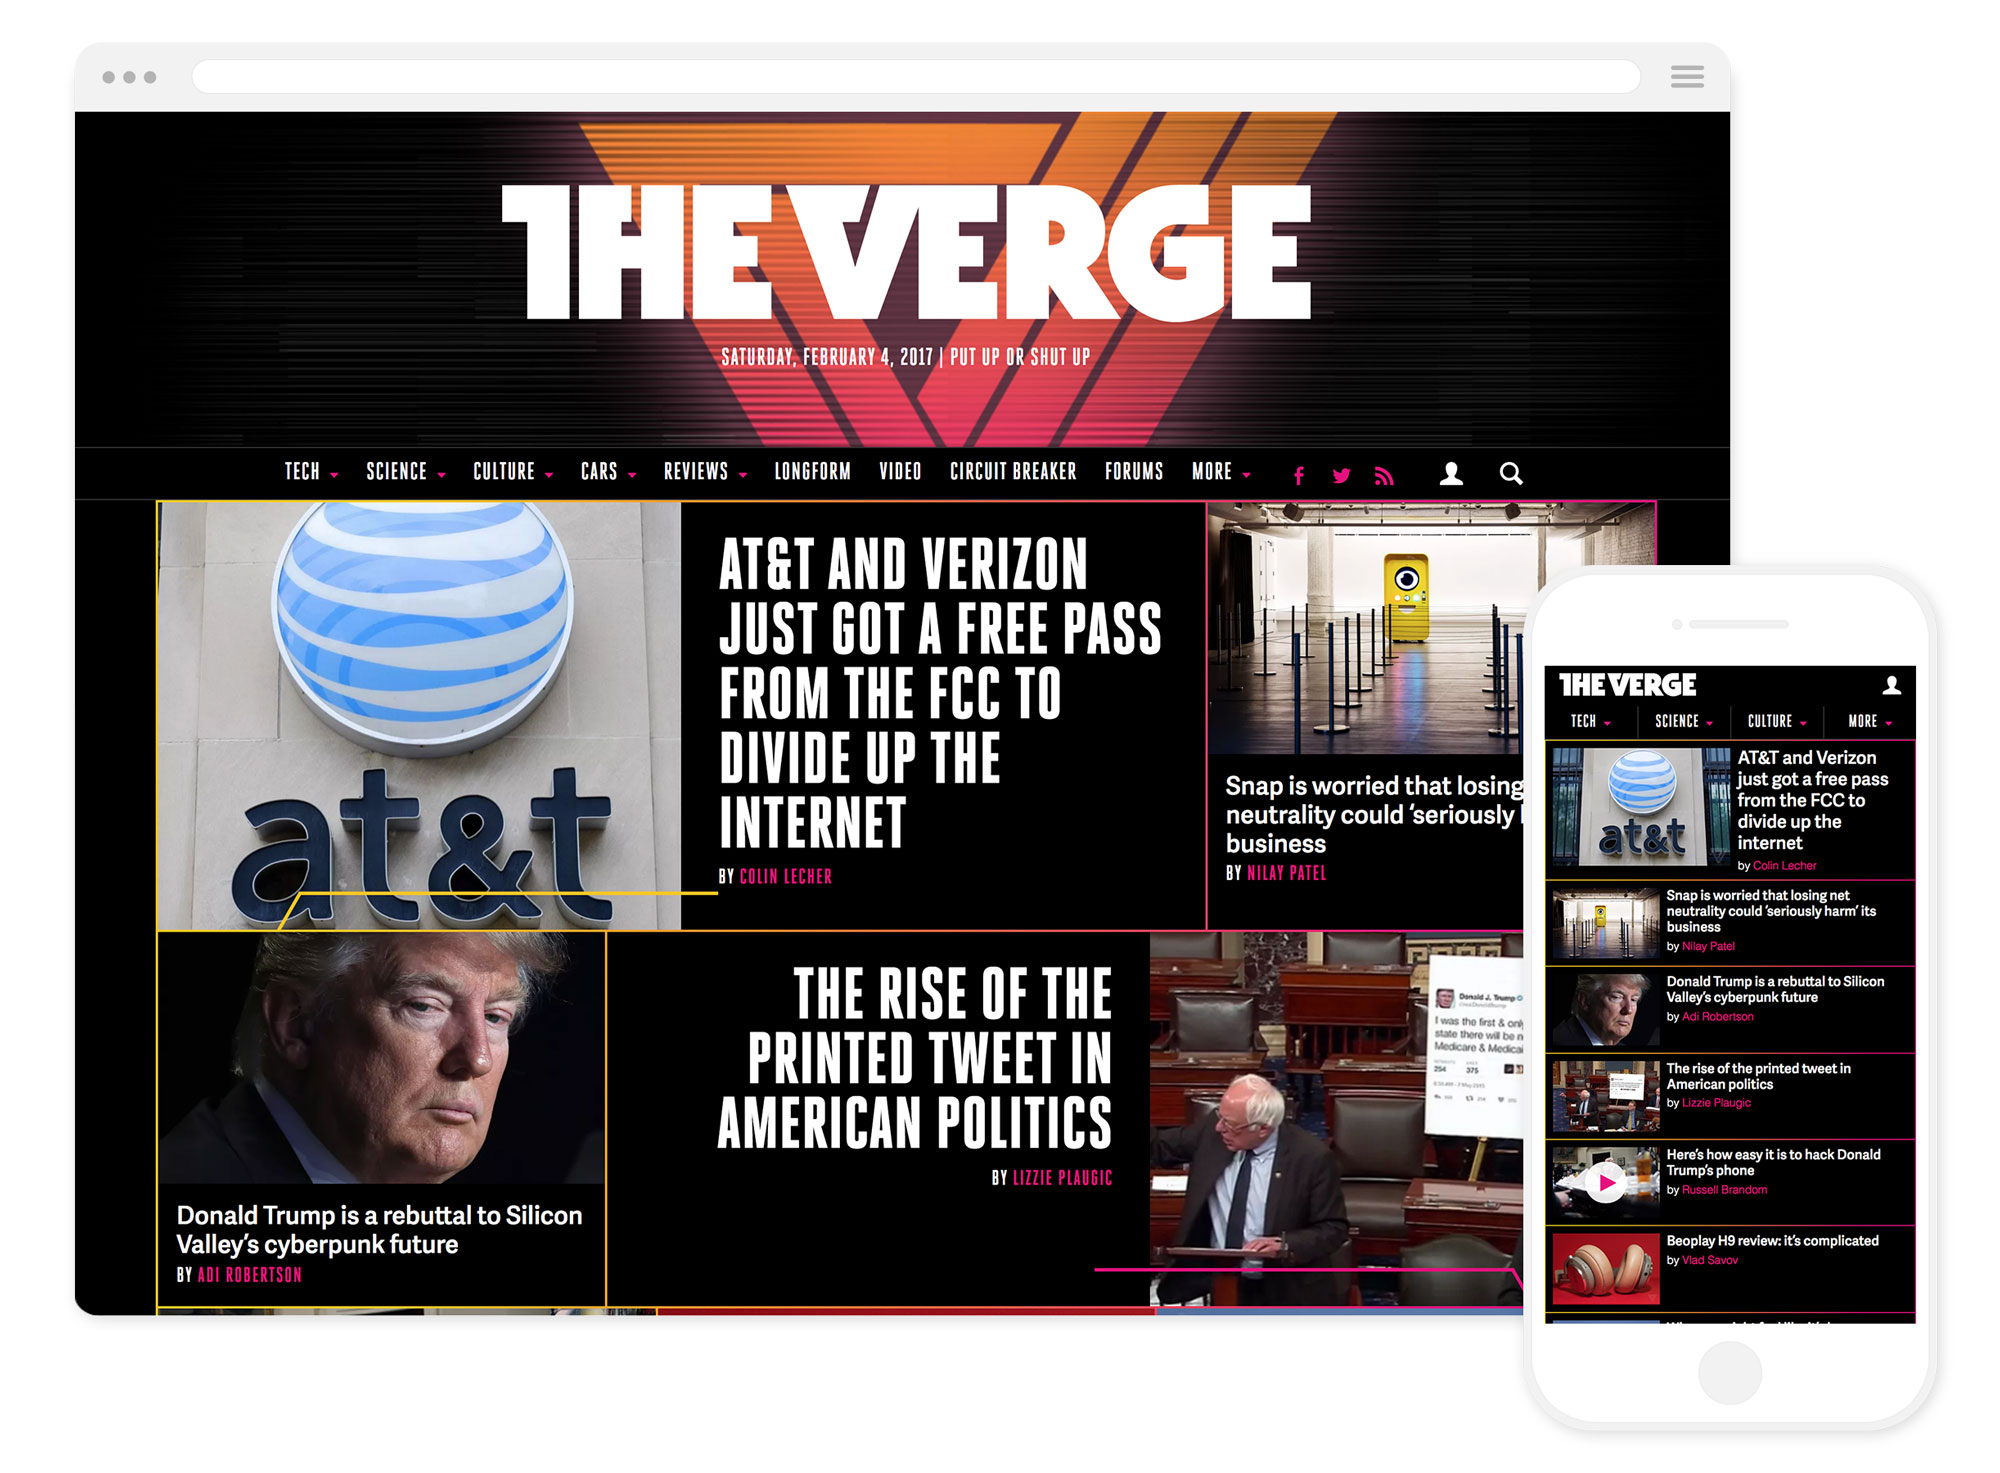 The Verge's brand new homepage